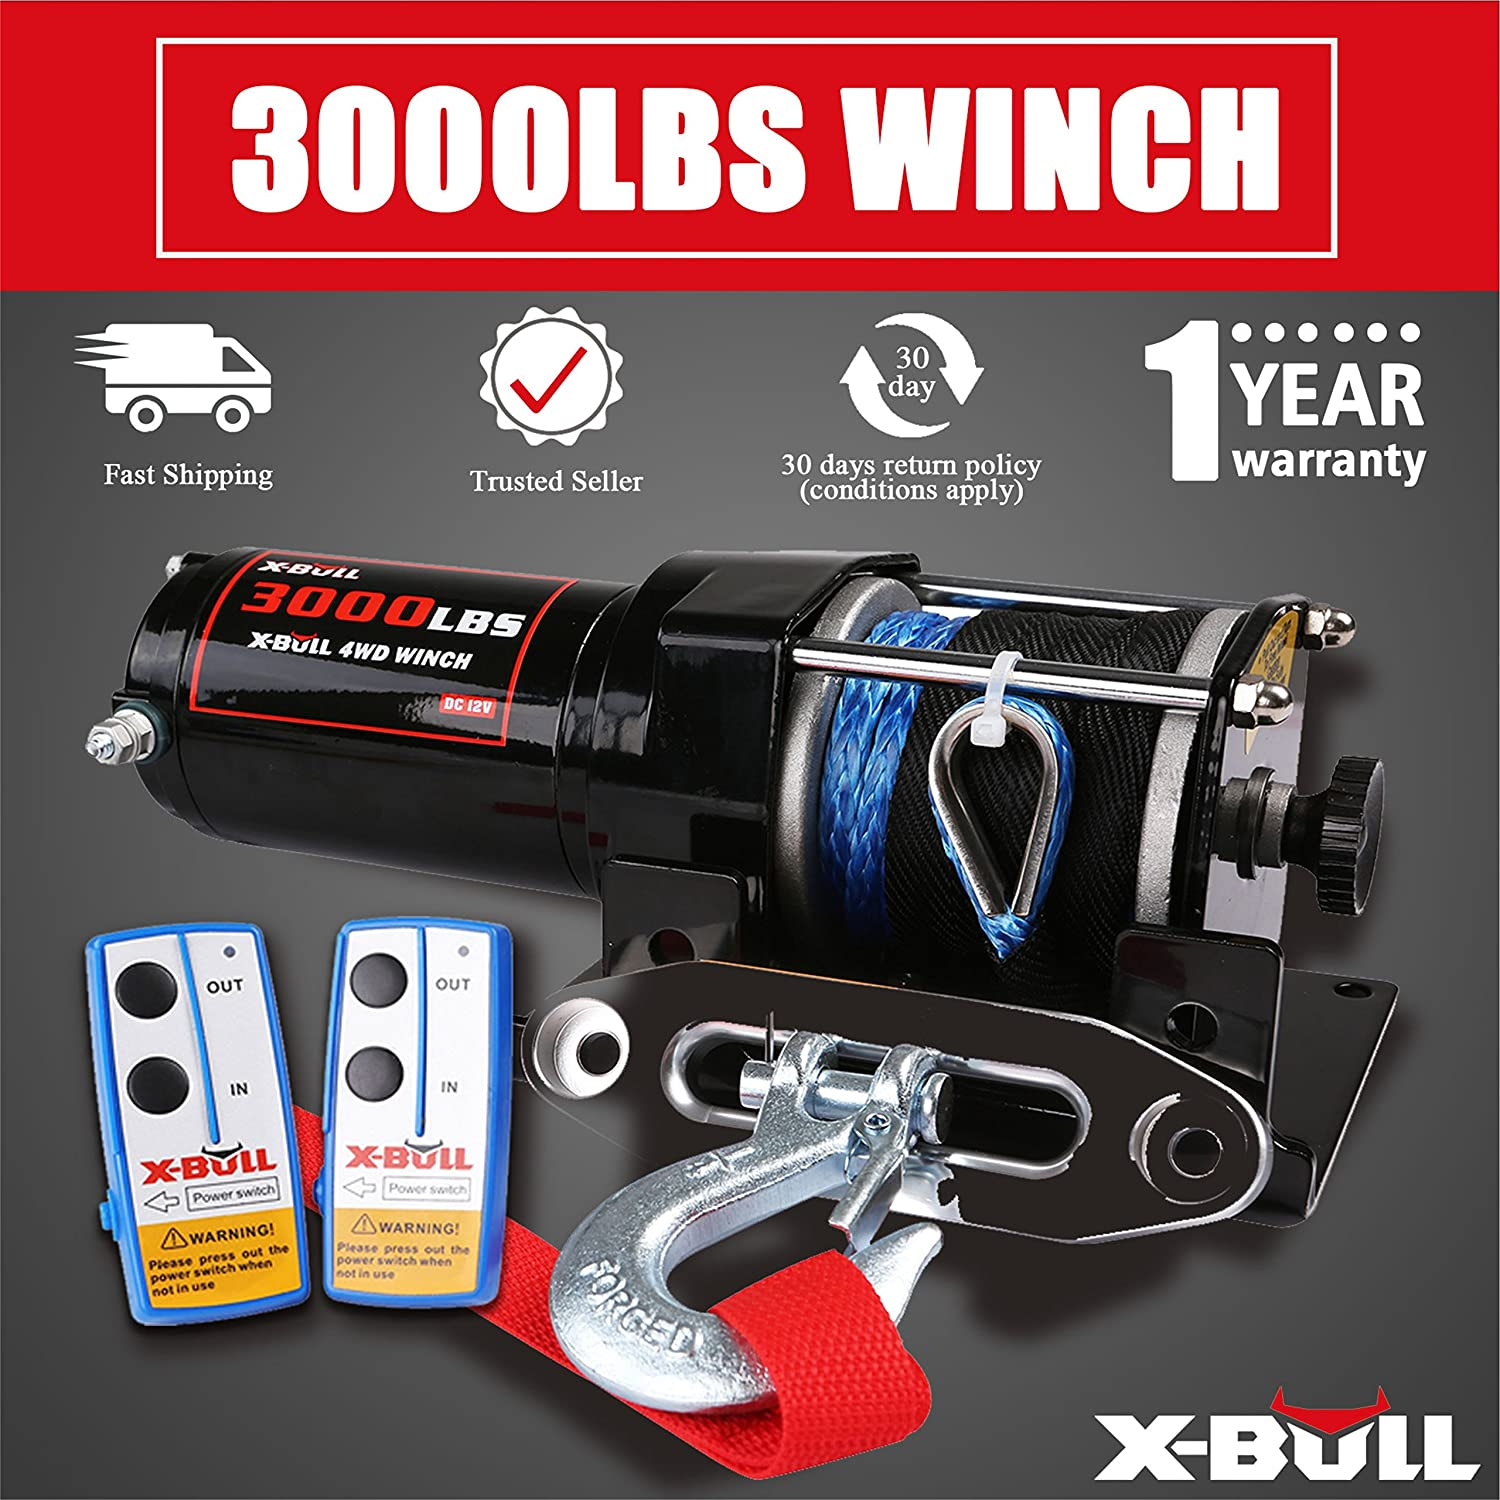 X Bull 12v 3000lbs 1361kgs Electric Winch Synthetic Rope Champion 3000 Wiring Diagram 10meter Wireless Atv 4wd Home Improvement